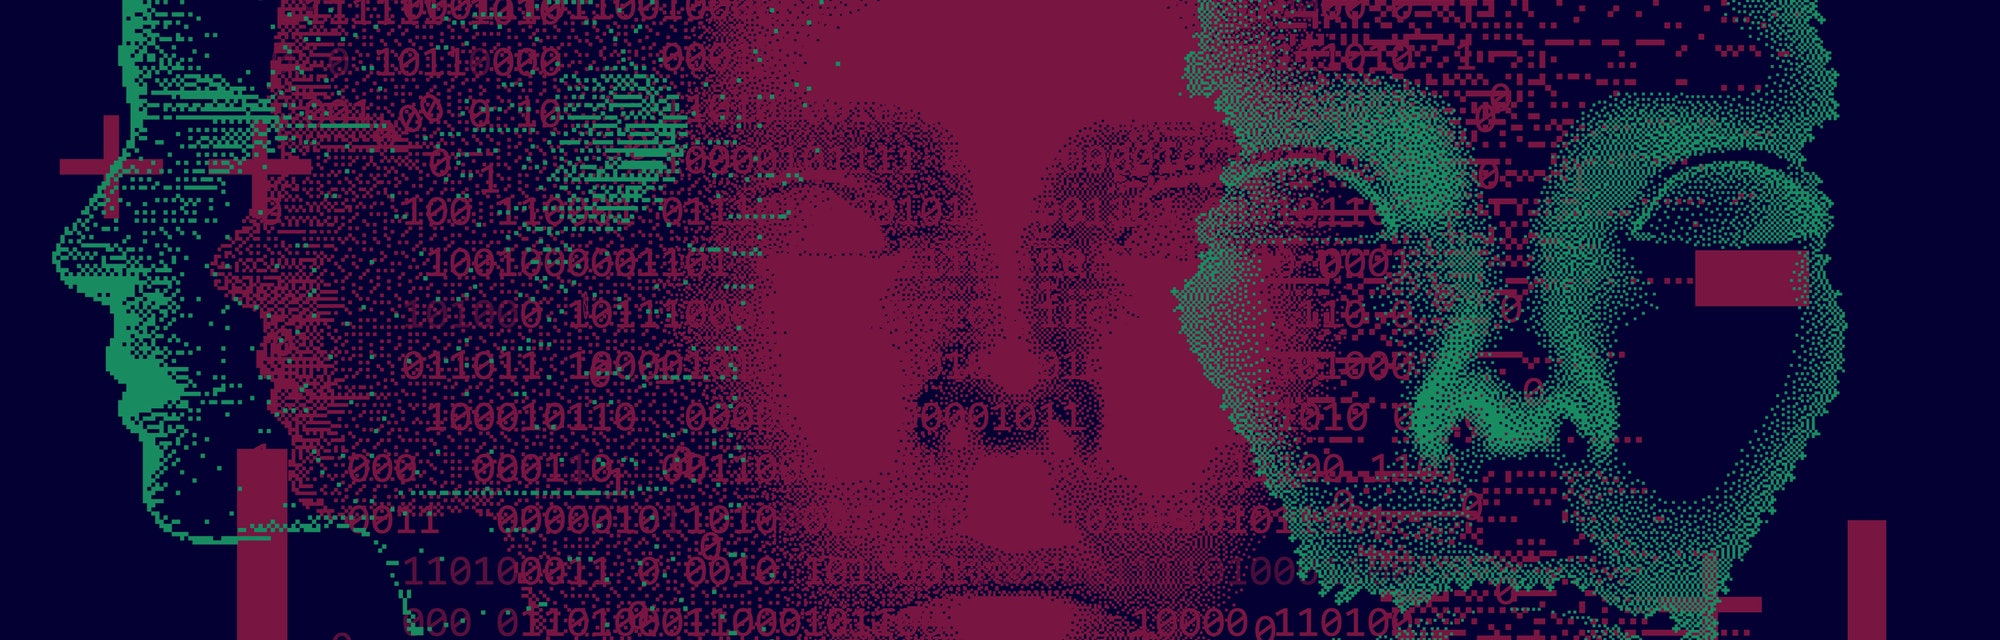 An abstract art piece depicting the front of faces in neon green and pink in a hyper-disconnected, hacked form.